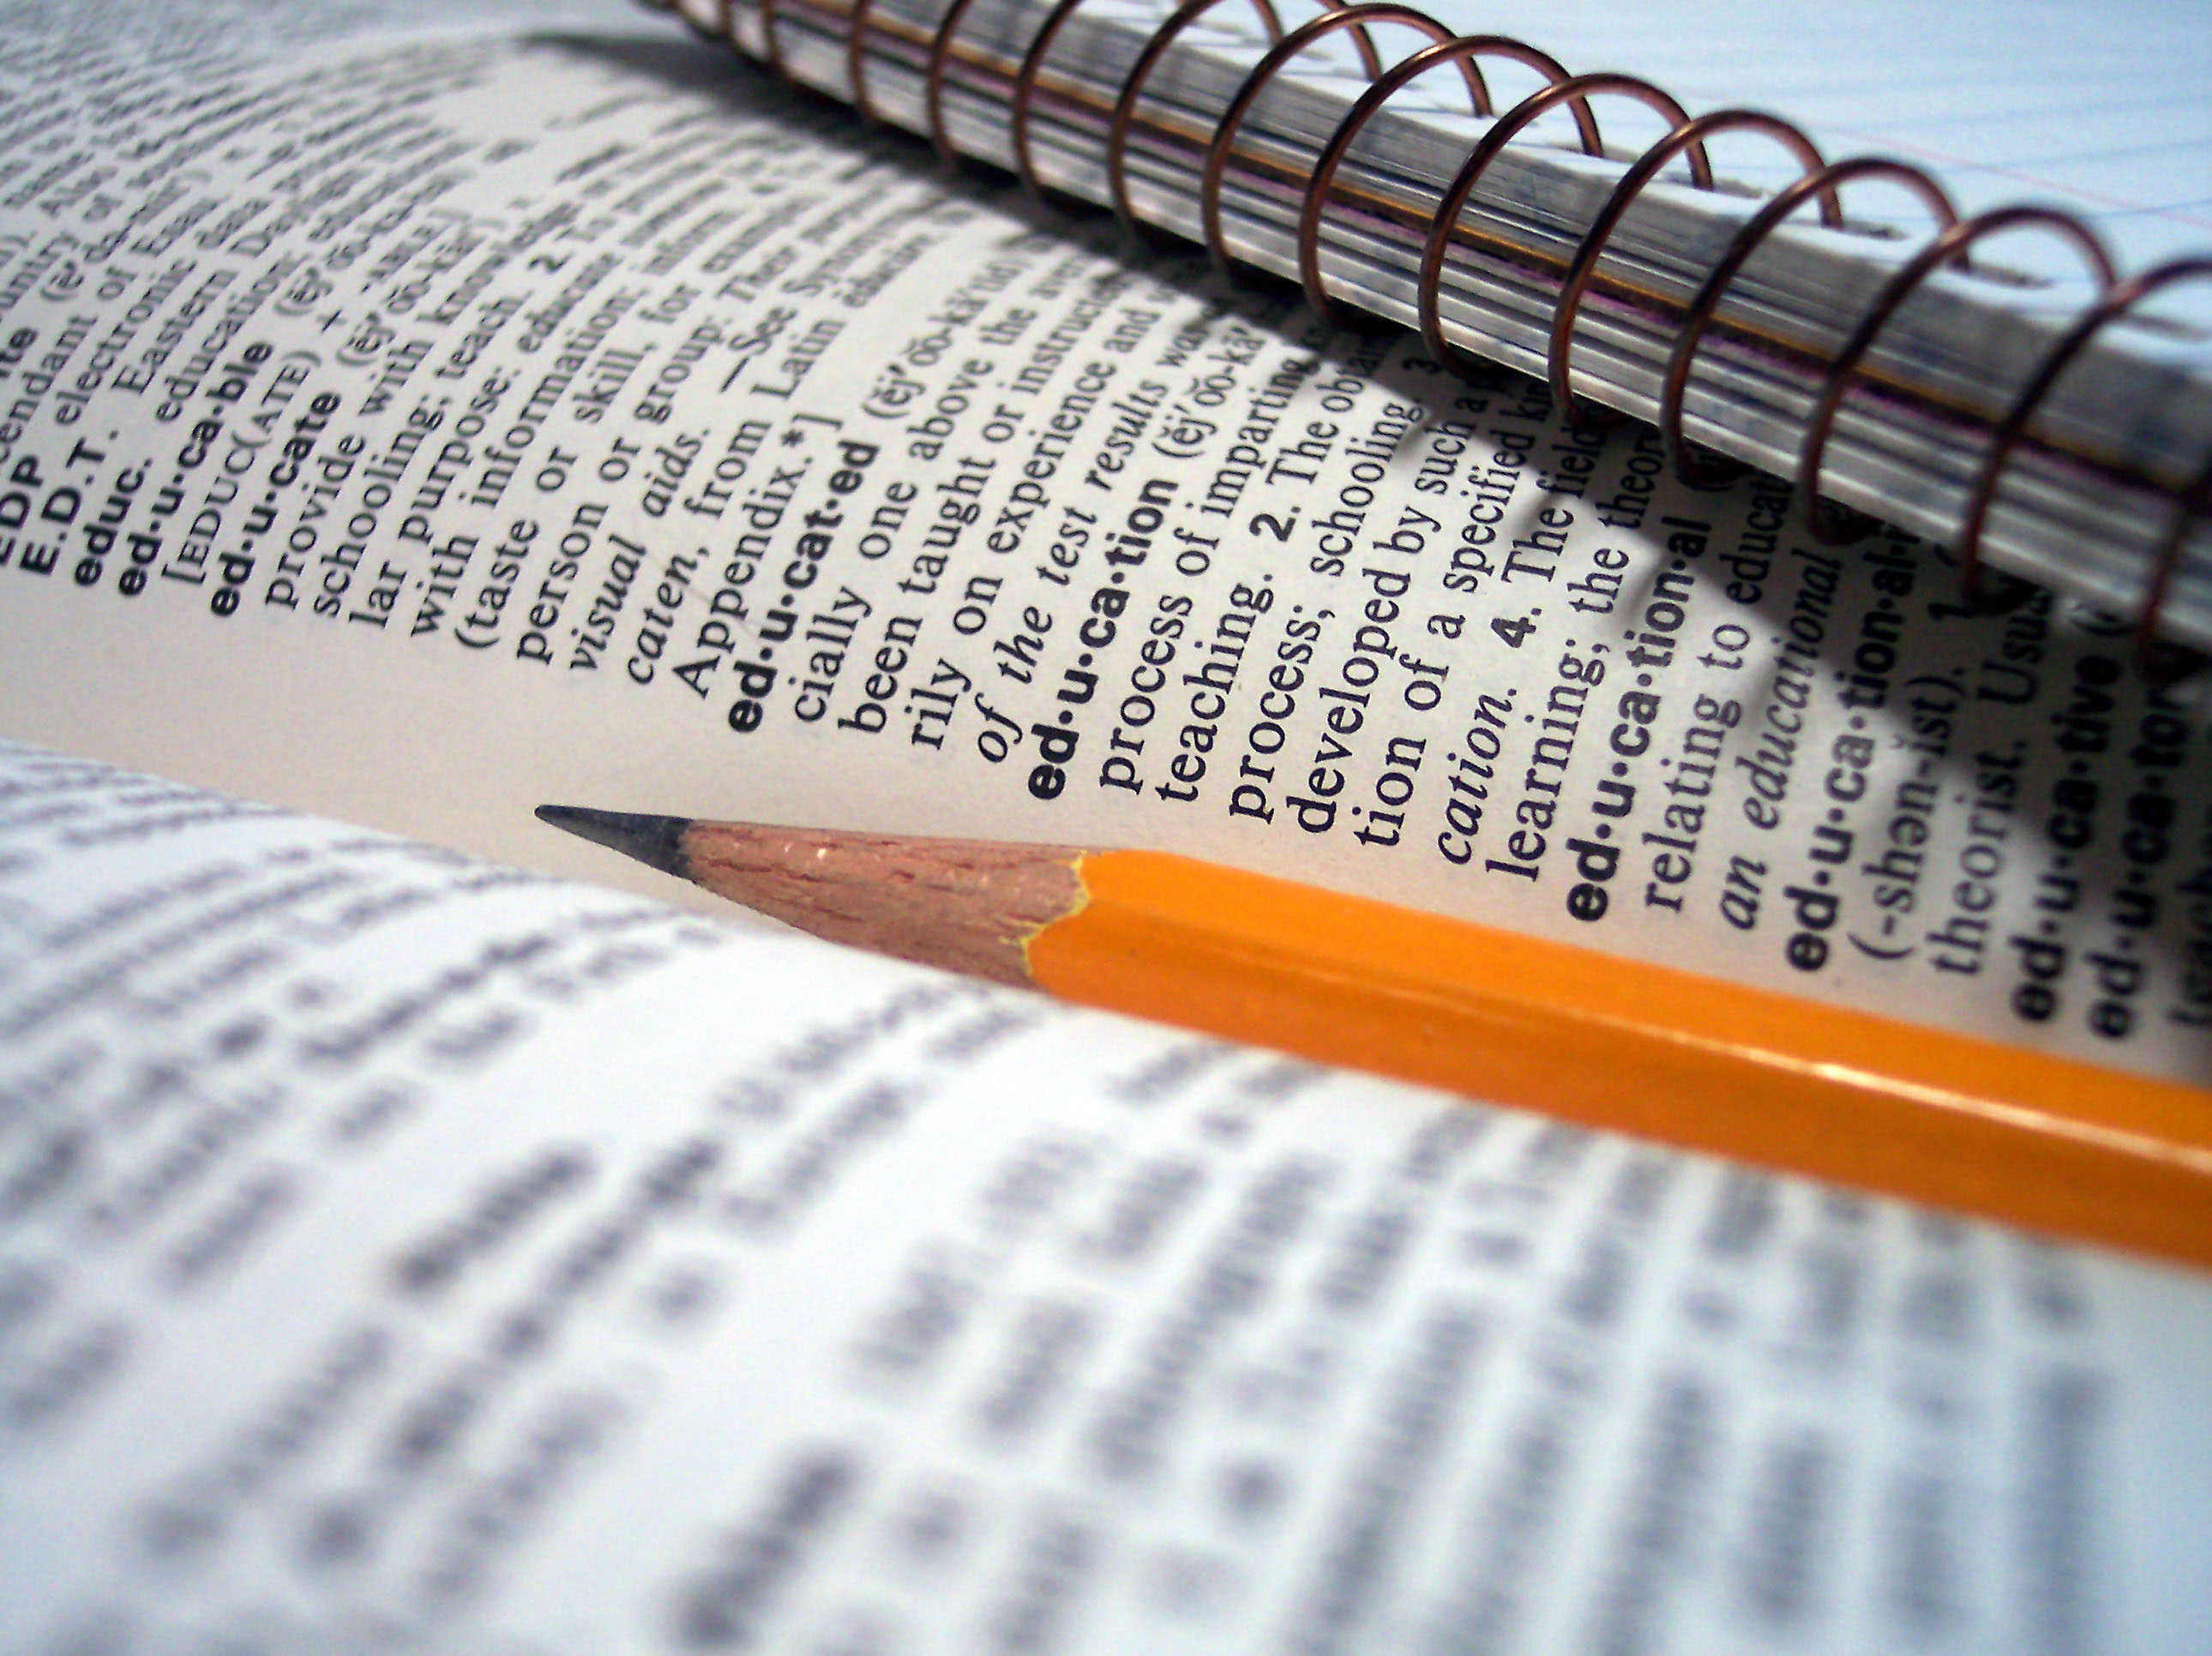 An image of a pencil, notebook and dictionary